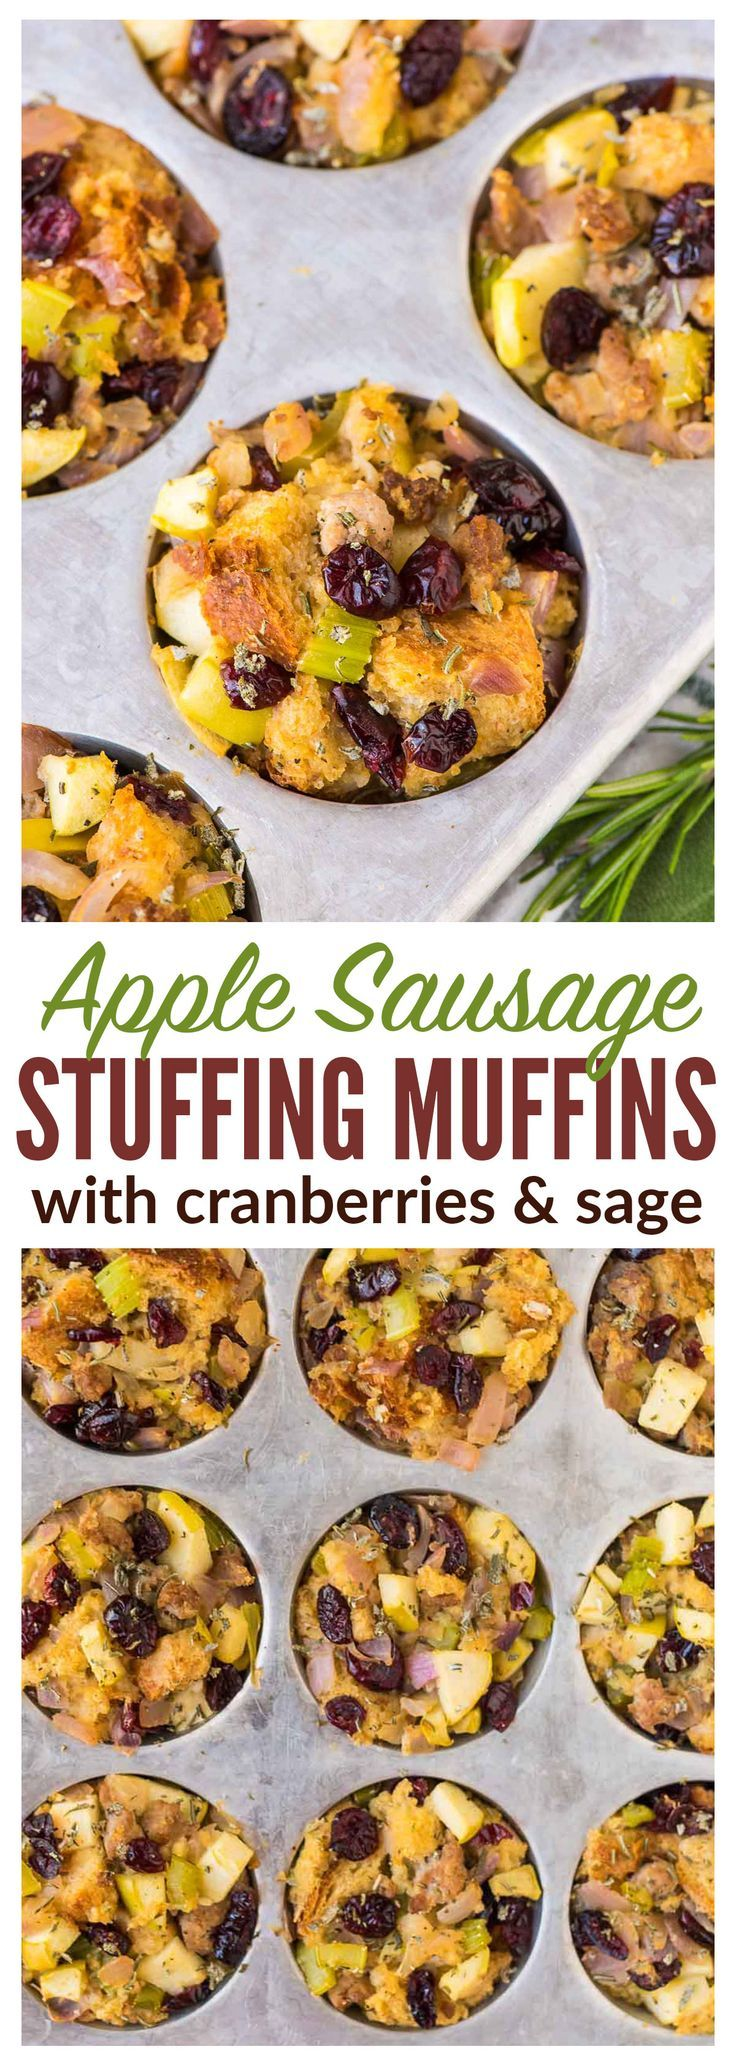 Apple Sausage and Cranberry Stuffing Muffins. The BEST classic Thanksgiving stuffing, baked in a muffin tin. Delicious crispy edges and easy to serve! Recipe at wellplated.com | @wellplated